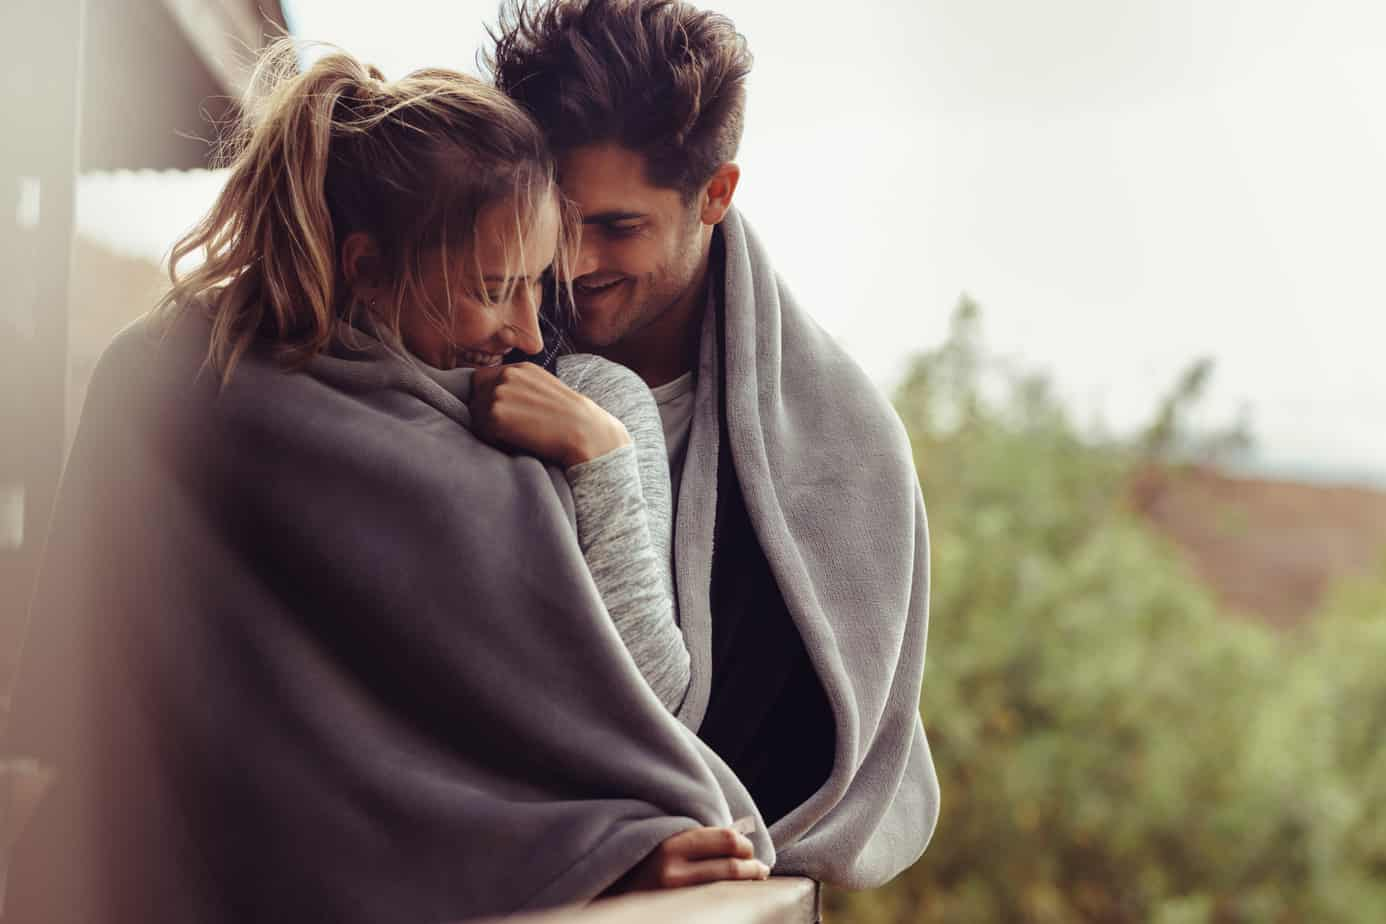 signs you've met the right person header image - photo of cute couple wrapped up together in gray blanket. standing outside on cloudy day